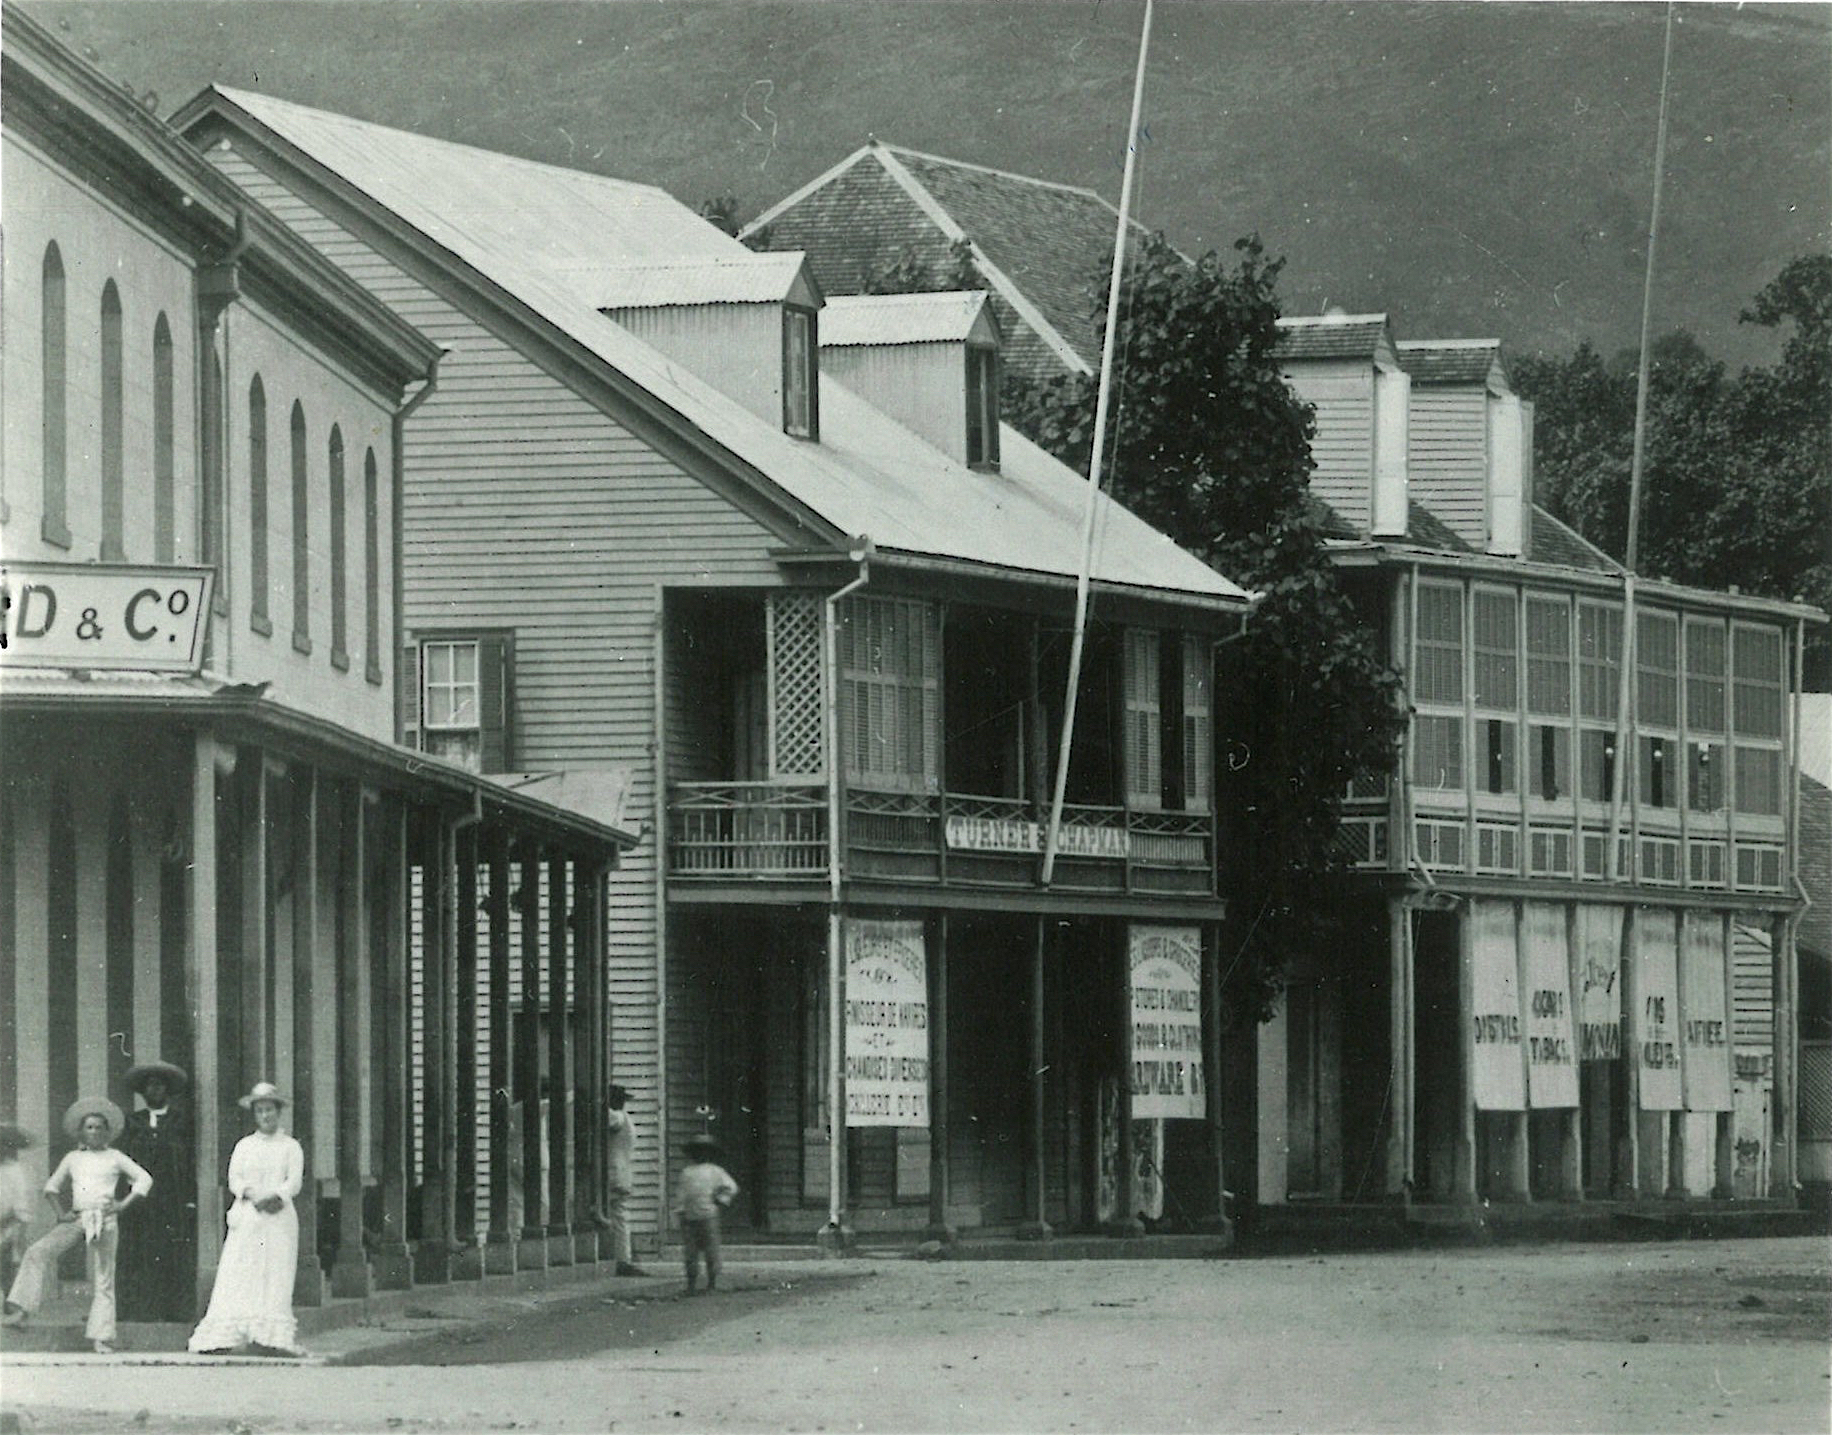 The Turner-Chapman building (center) in Papeete, Tahiti, circa early 1880s.